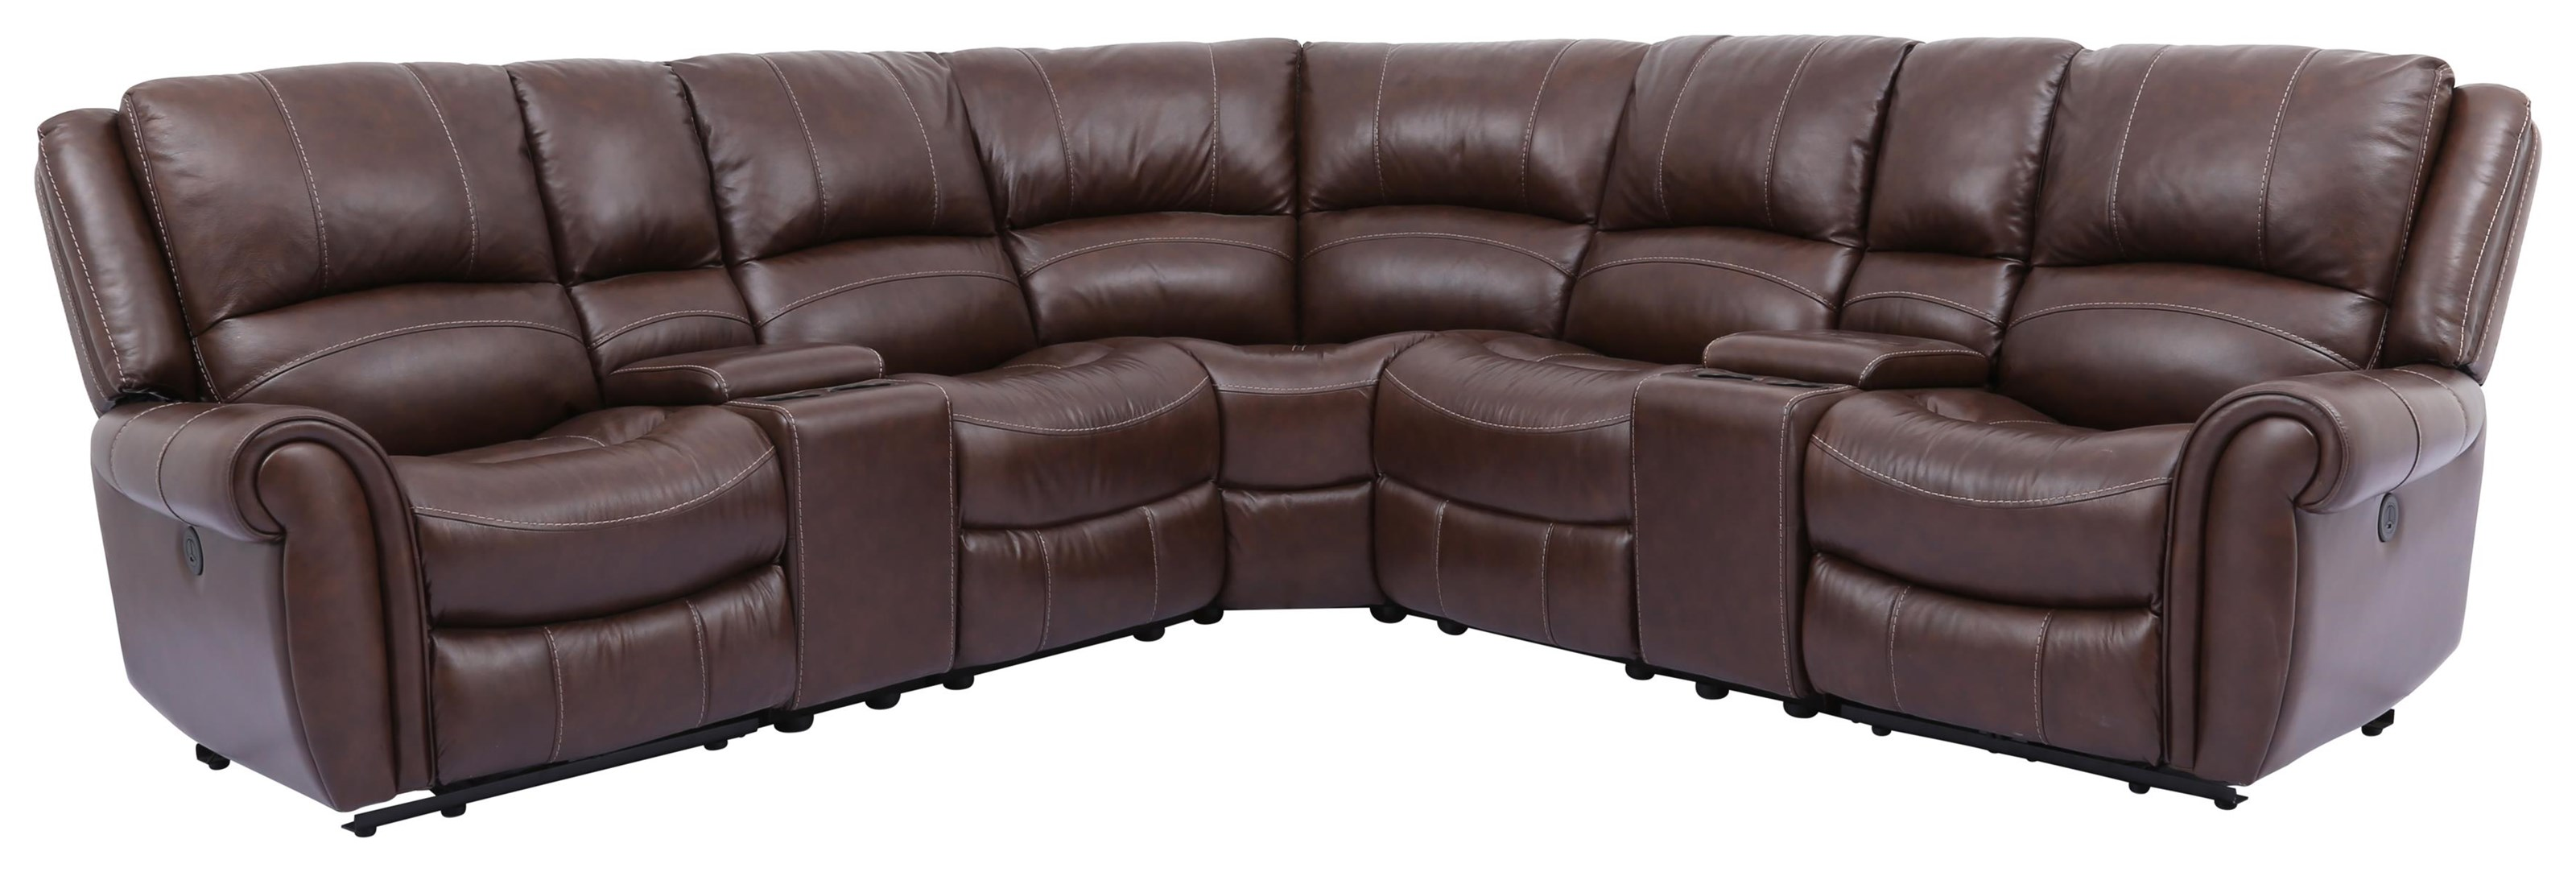 Cheers Sofa 5705 7 Piece Power Reclining Sectional - Item Number: 5705 7PCPWR